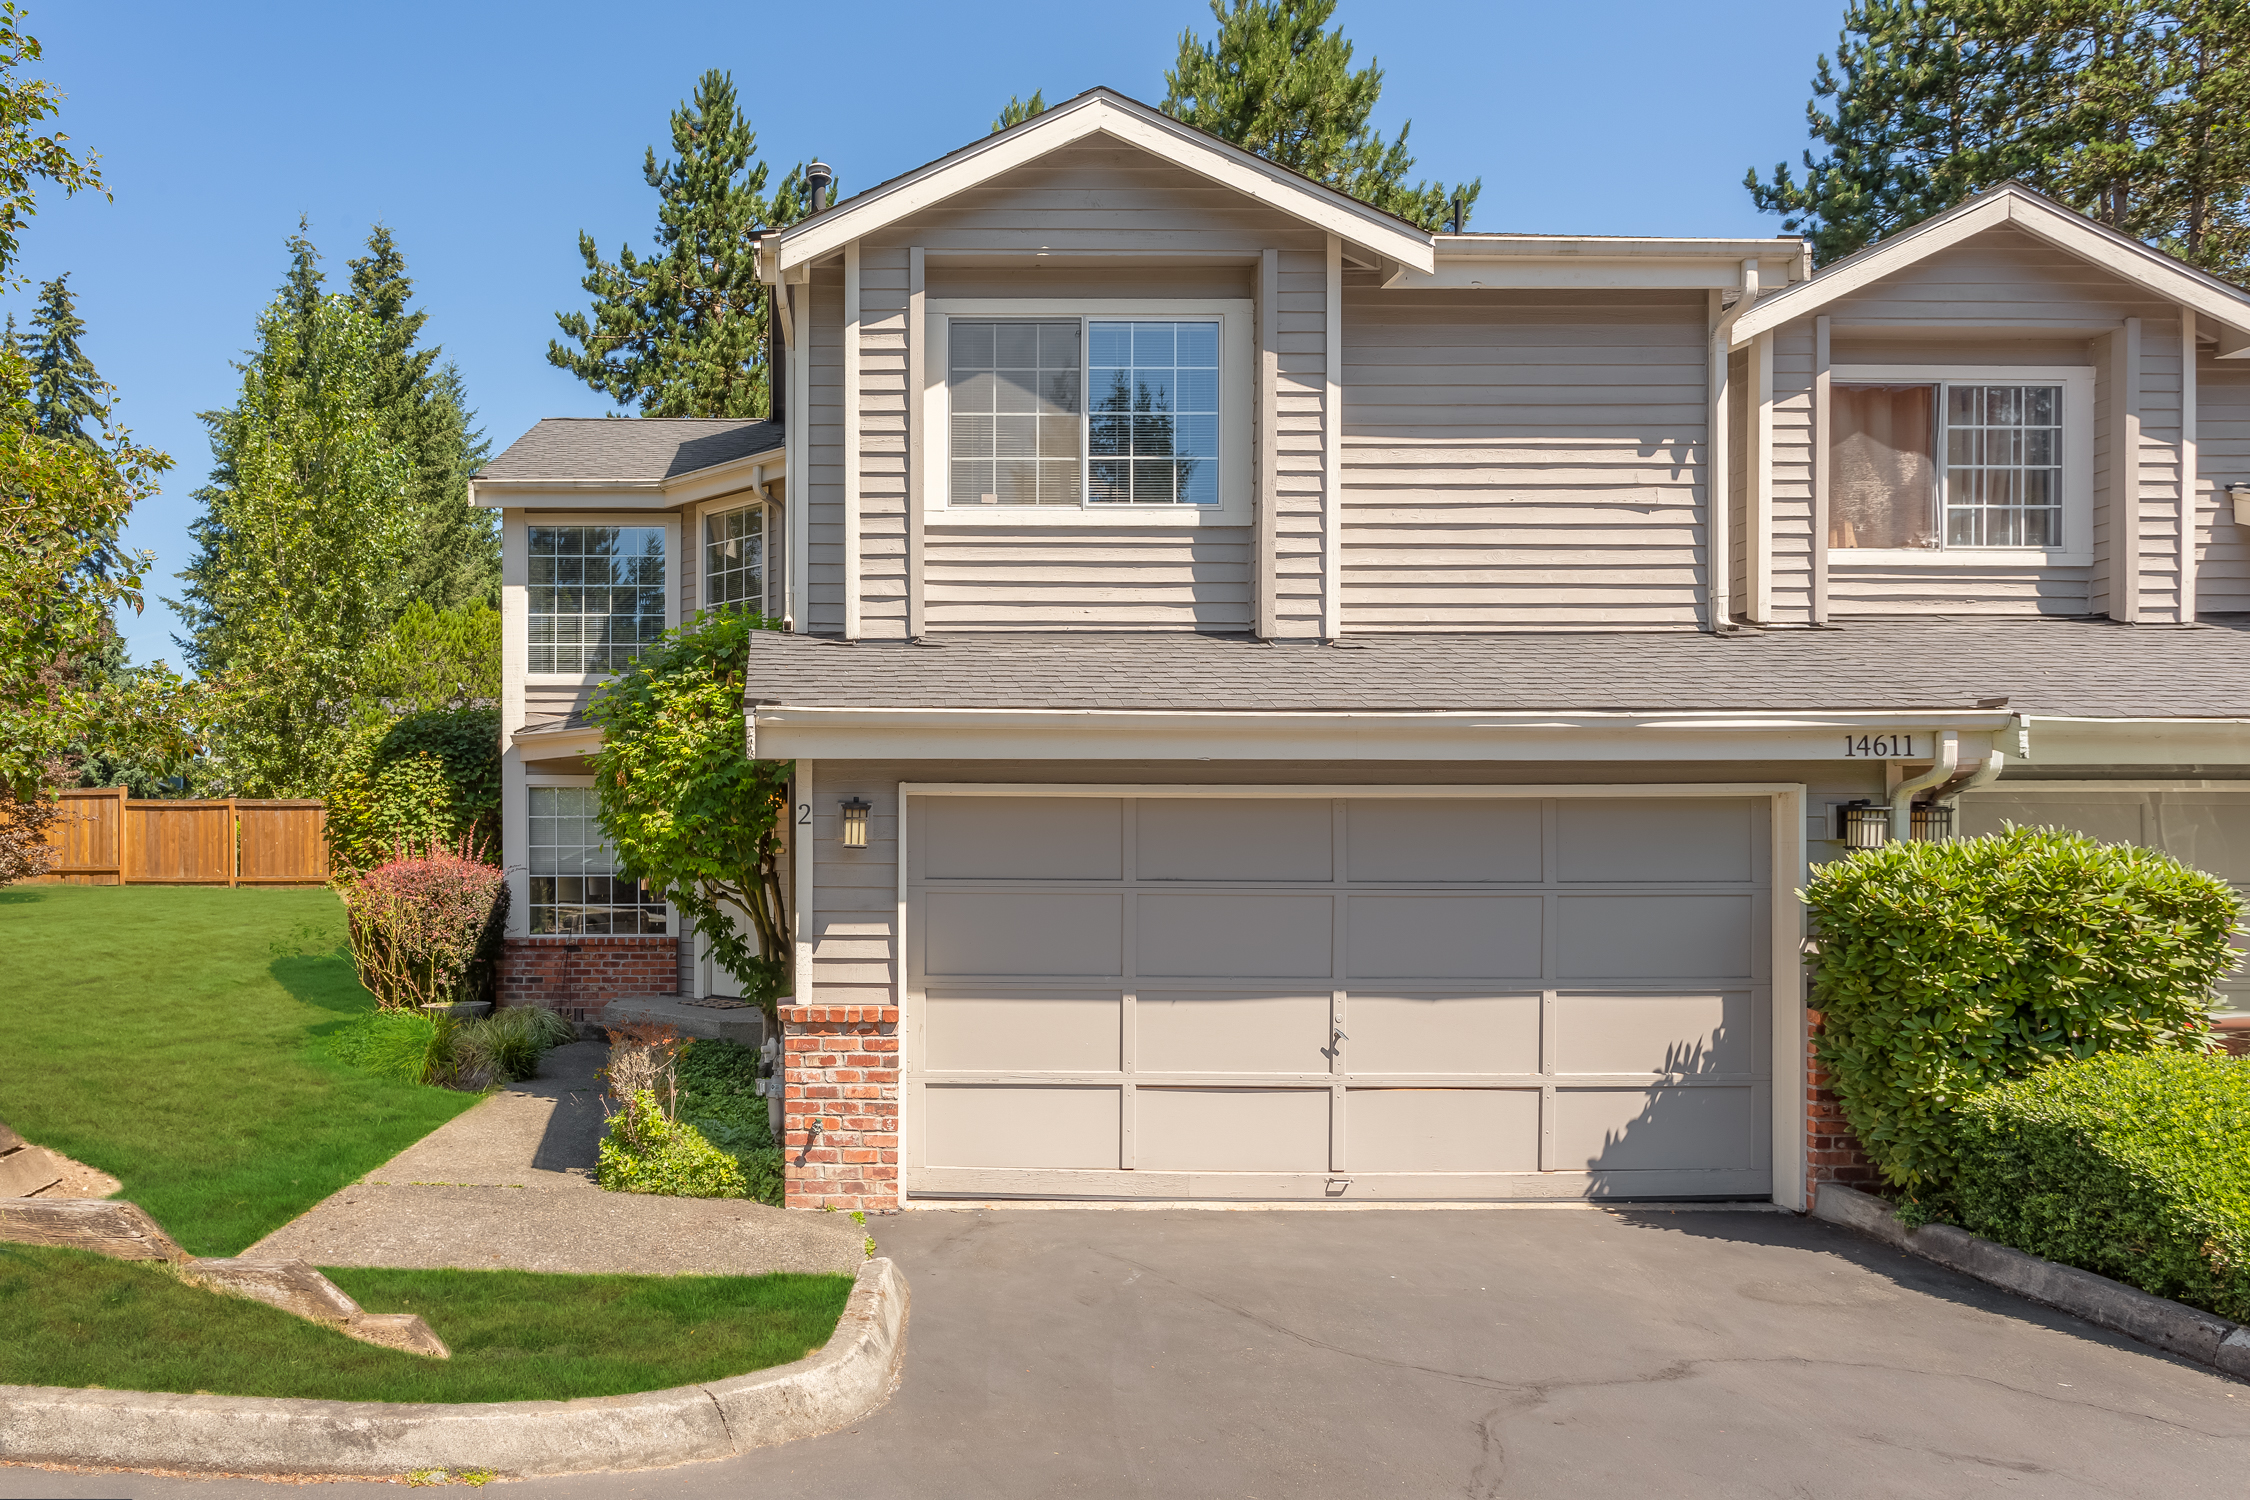 Bellevue, WA | Sold for $780,000